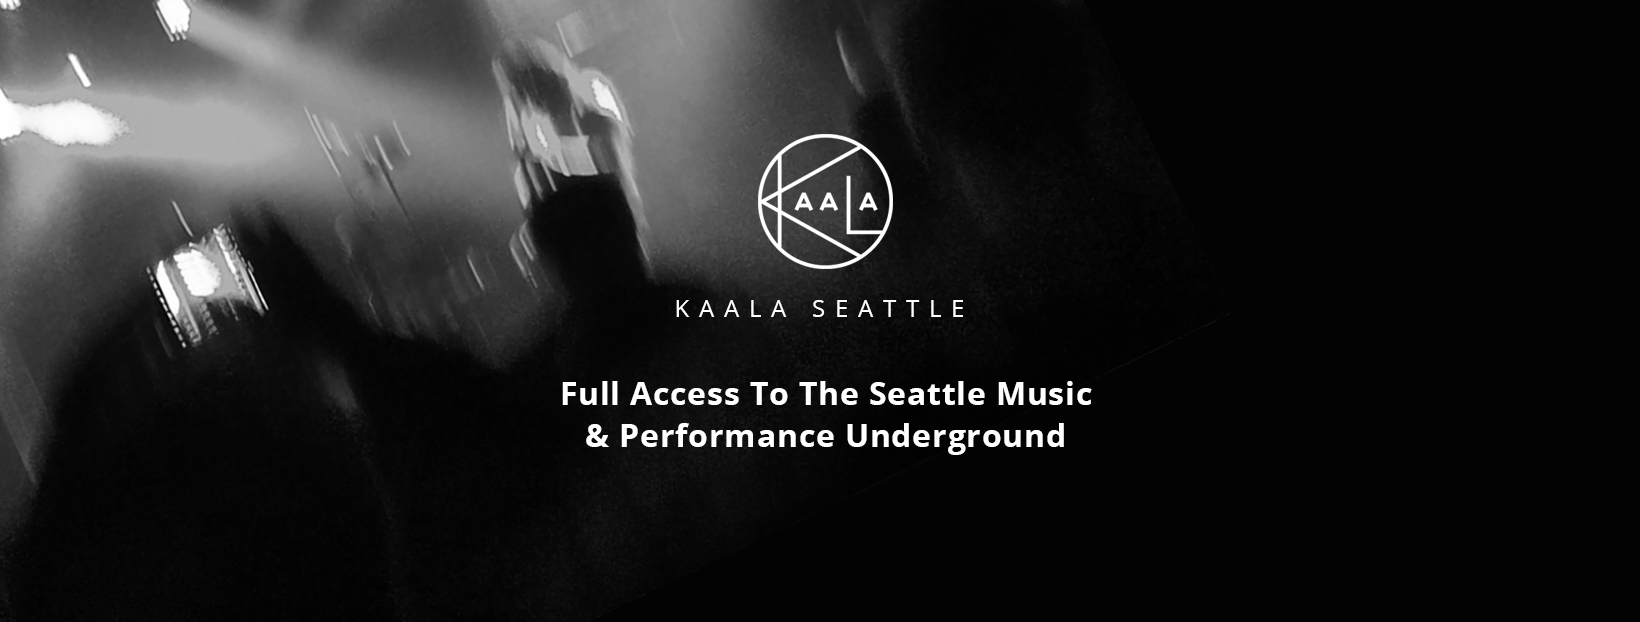 Kaala Seattle Logo